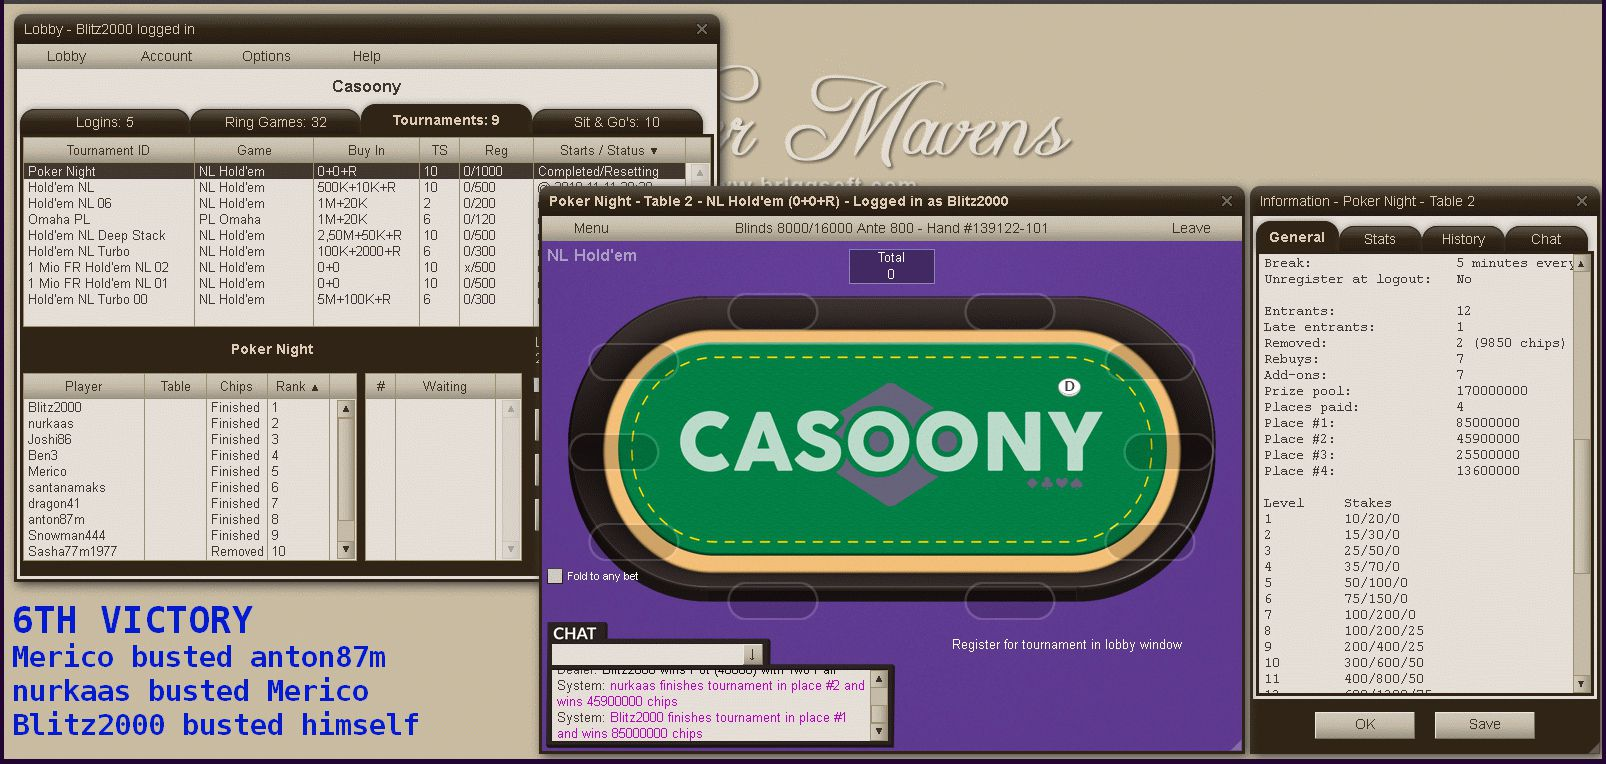 Casoony_Poker_Lobby-PokerNight_20191110_2143_2_VICTORY_SHOW.gif